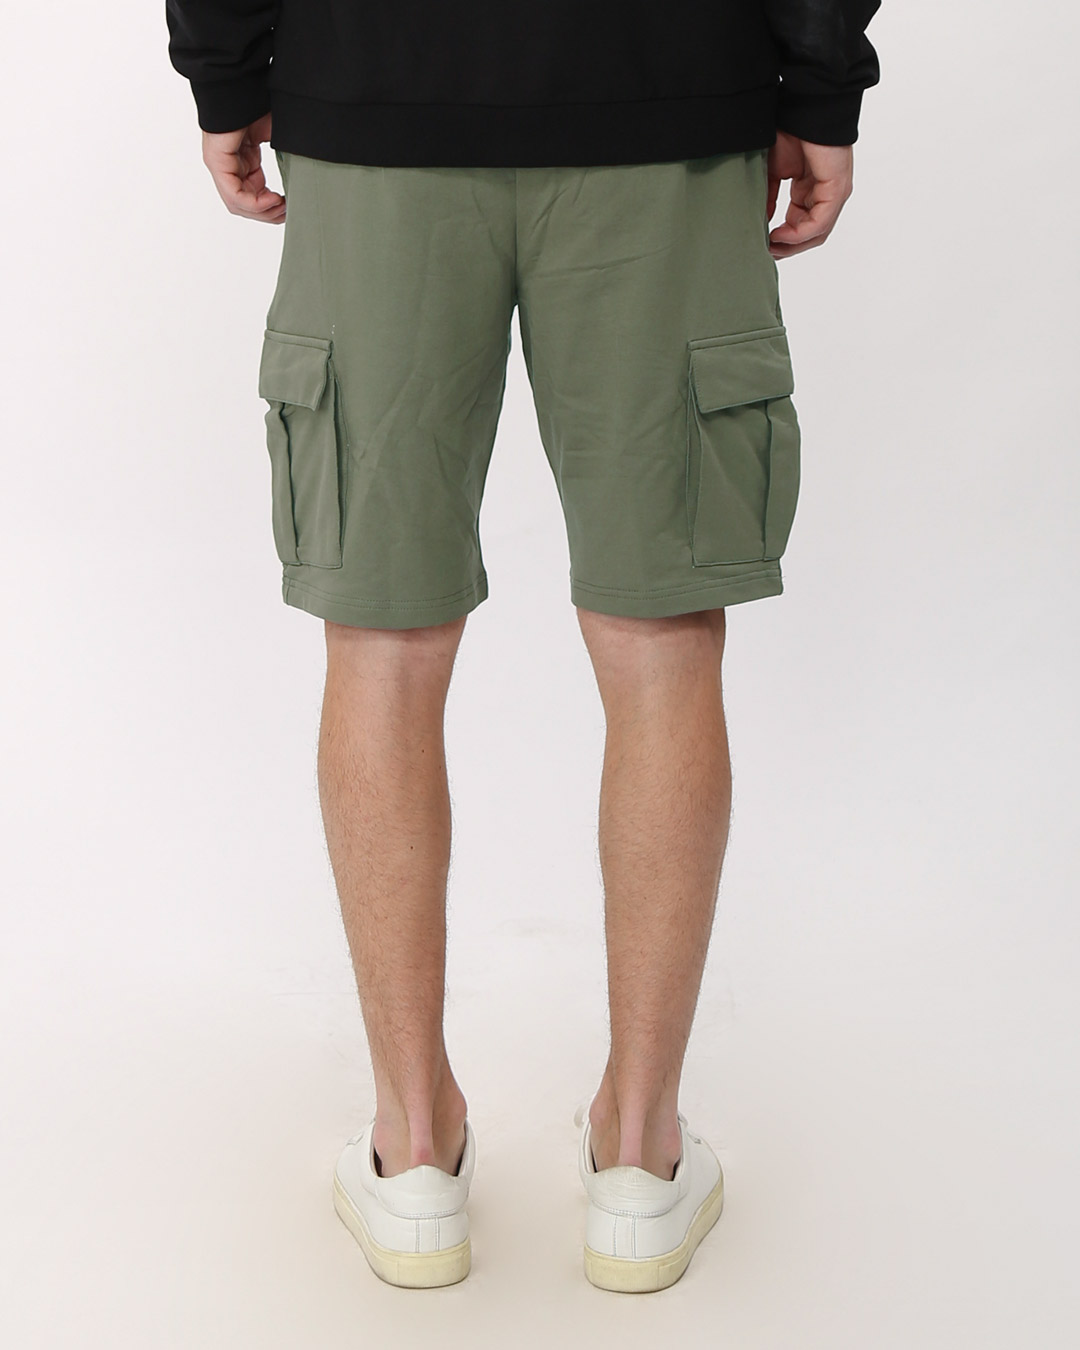 5c1823e0f7 Army Green Fleece Cargo Pocket Shorts - Army Green Plain Mens Shorts@Best  Price India - Bewakoof.com